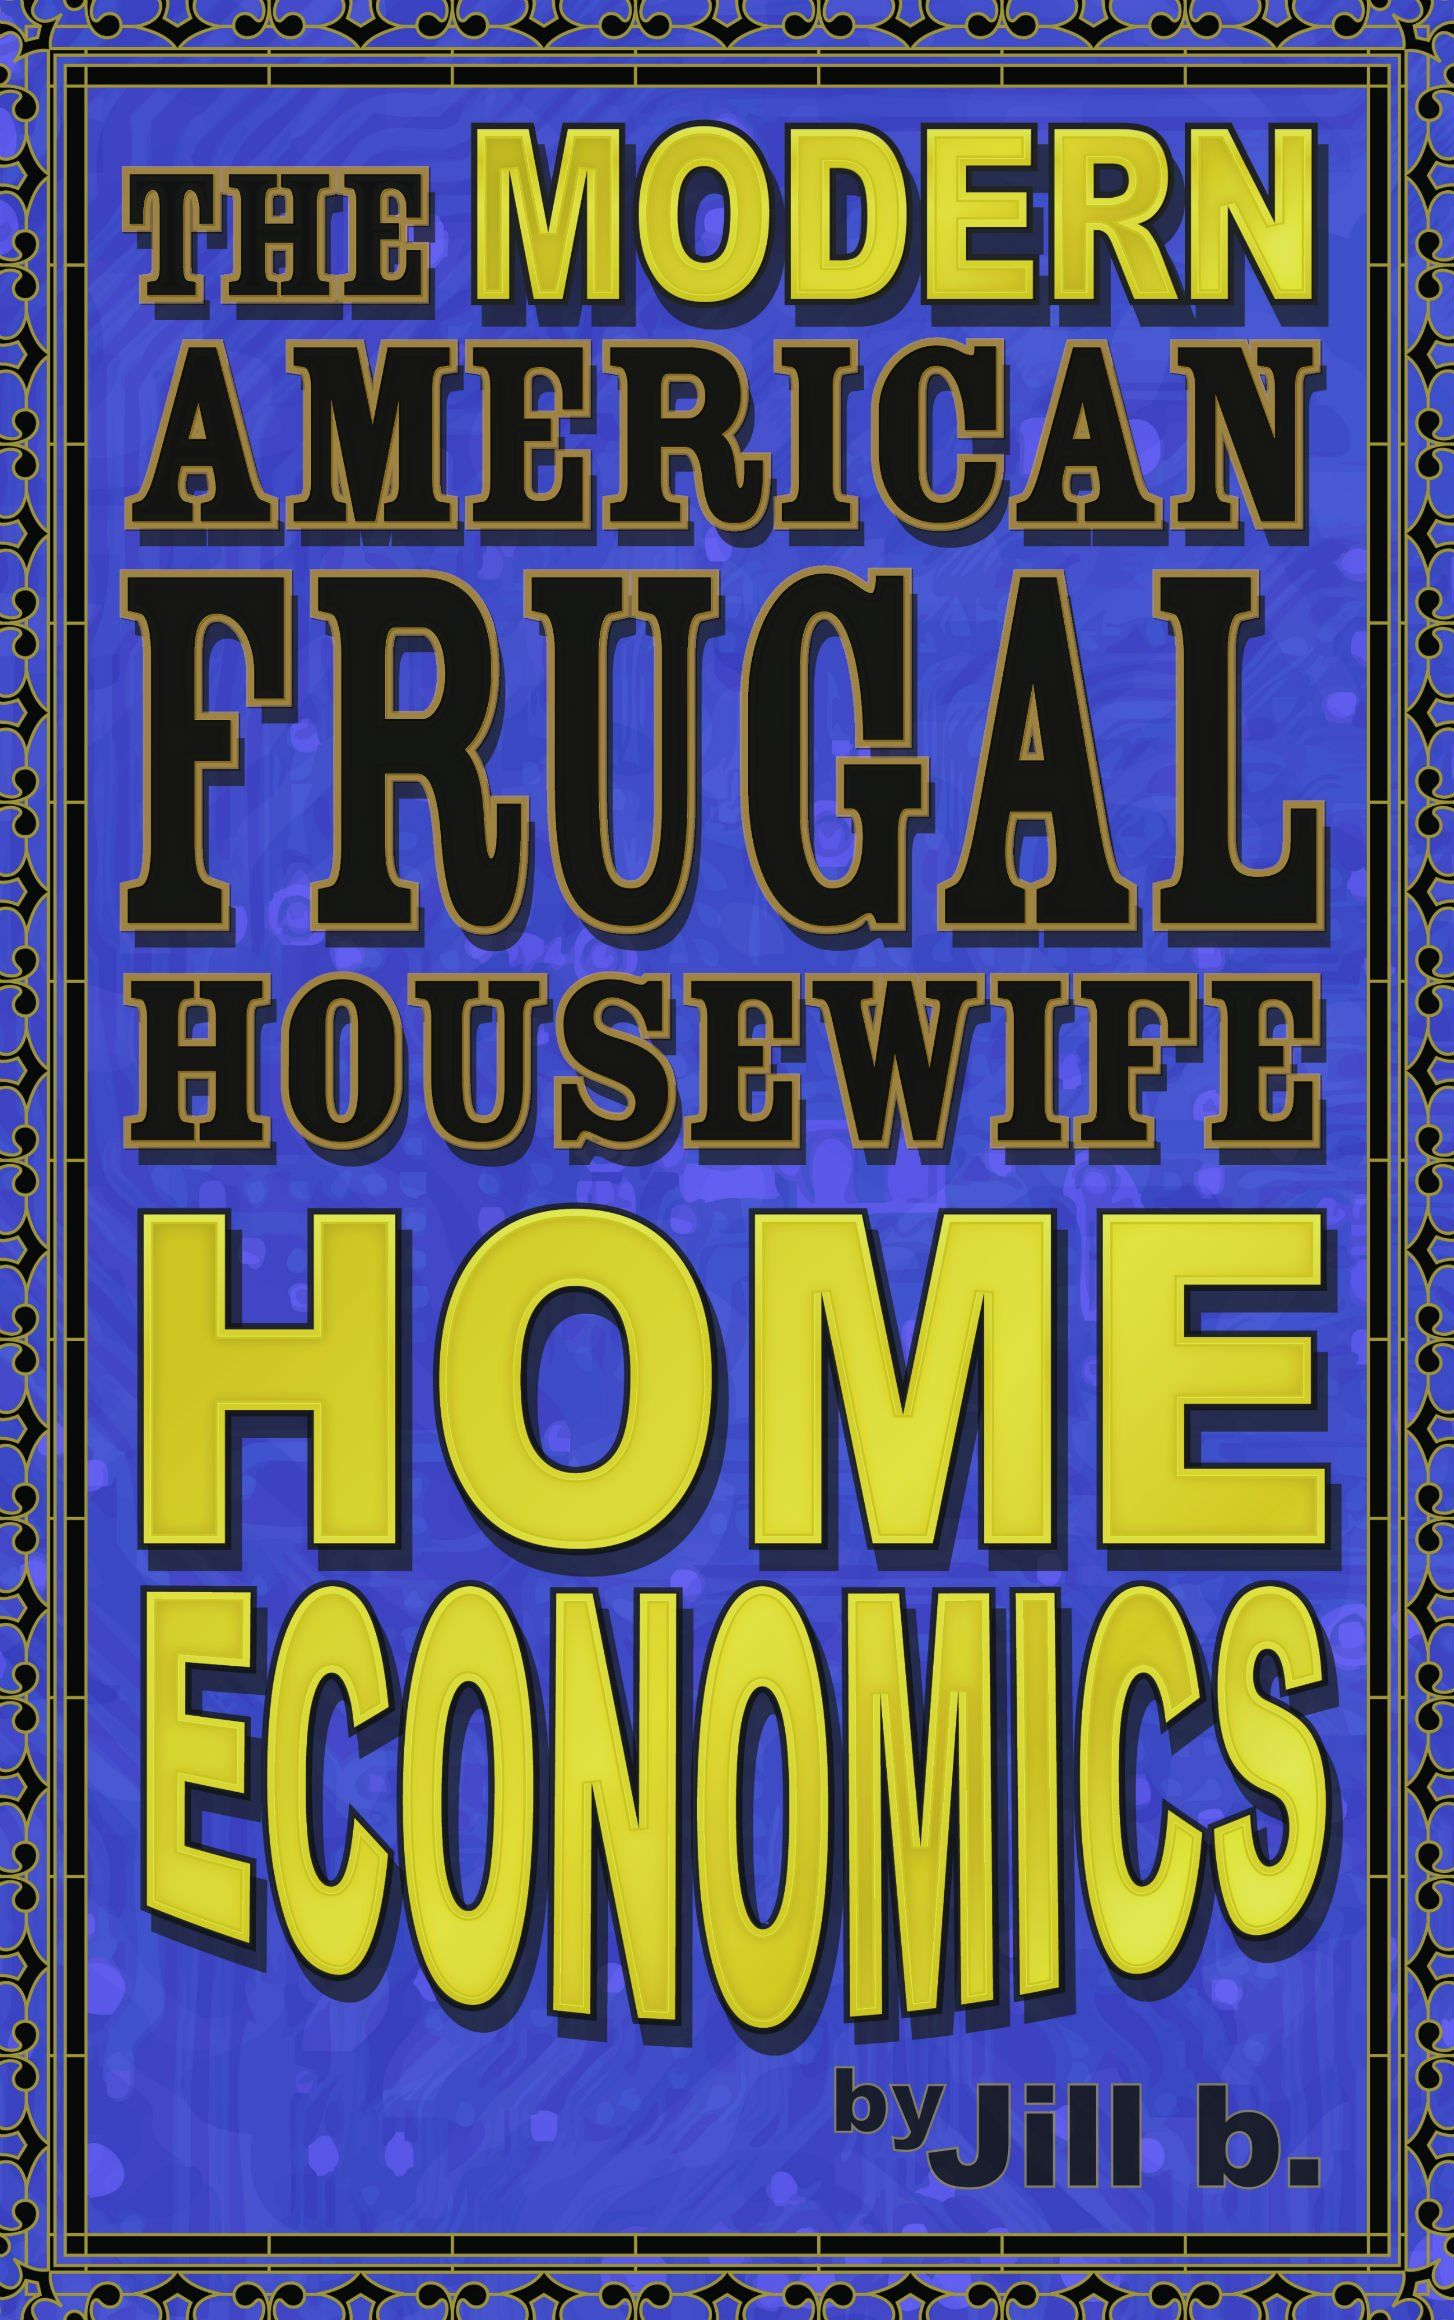 The Modern American Frugal Housewife Book 1 Home Economics